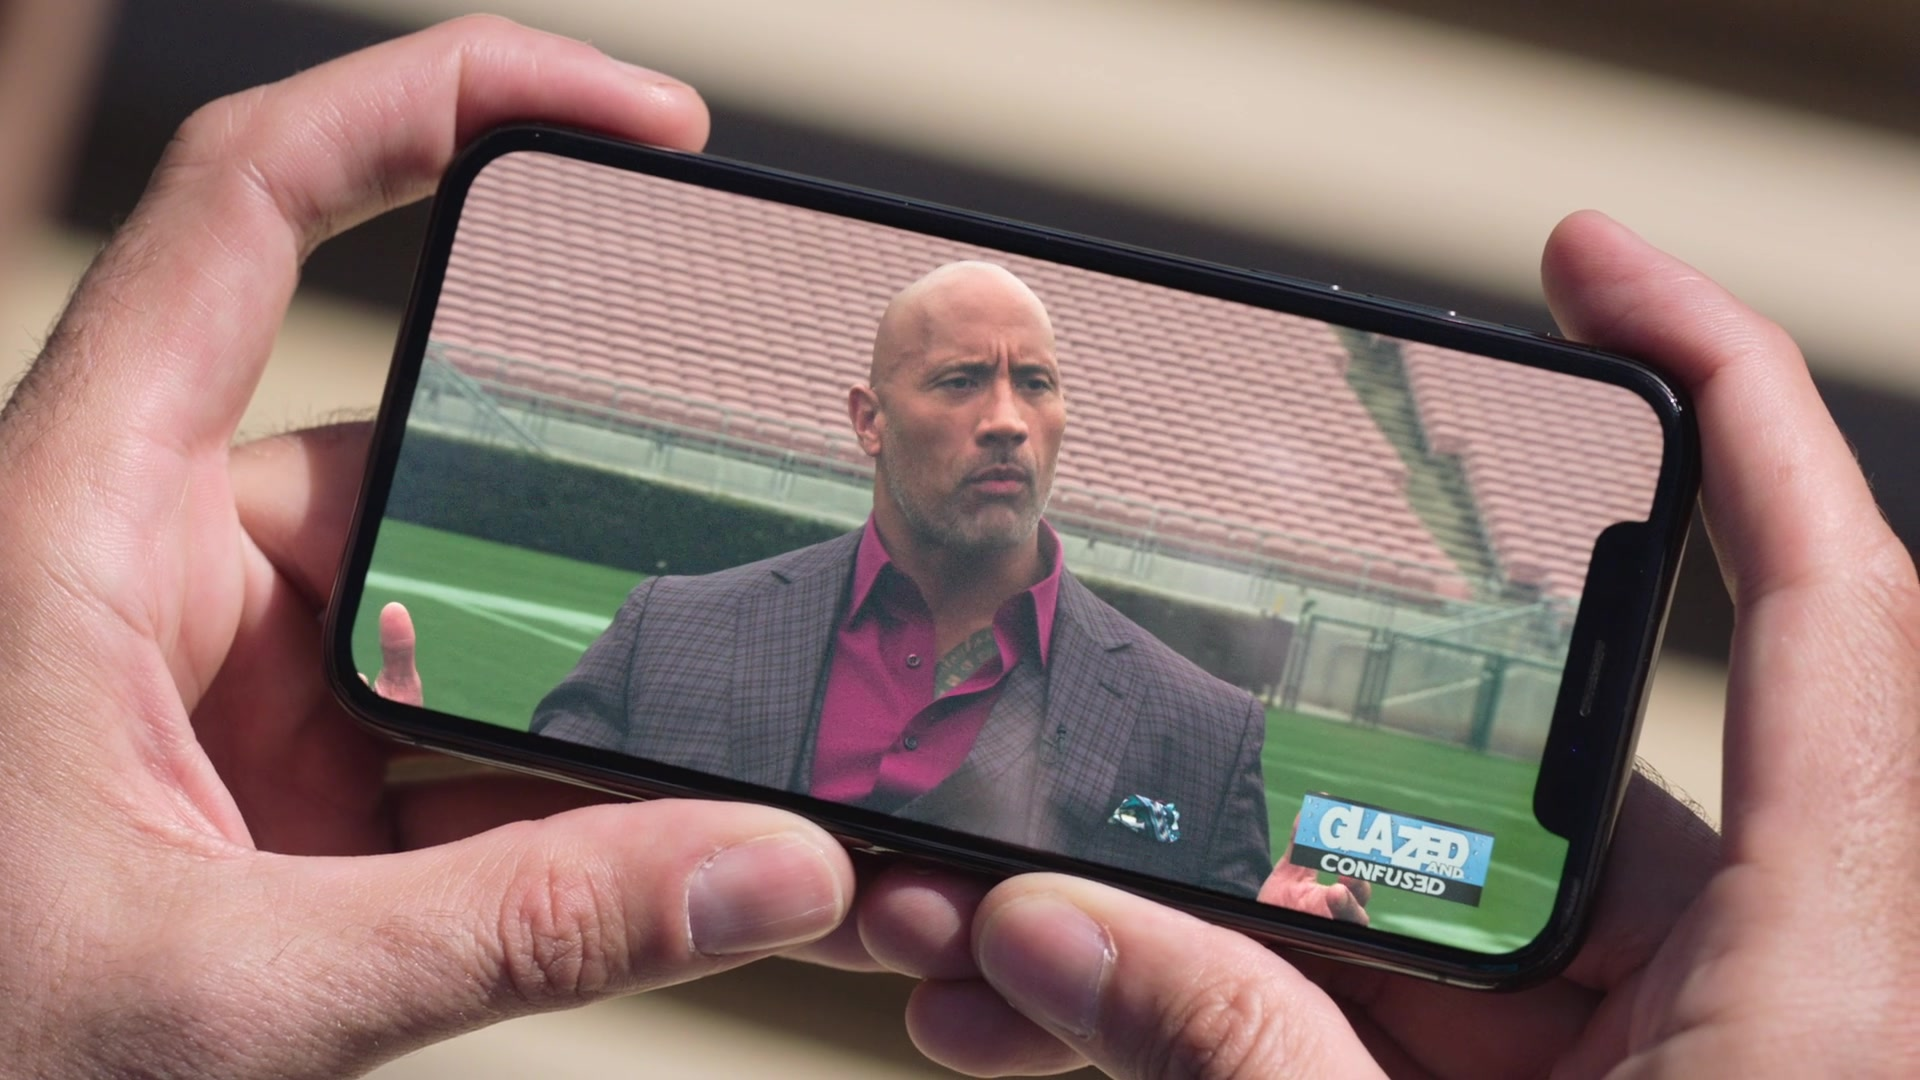 apple iphone x used by troy garity jason in ballers season 4